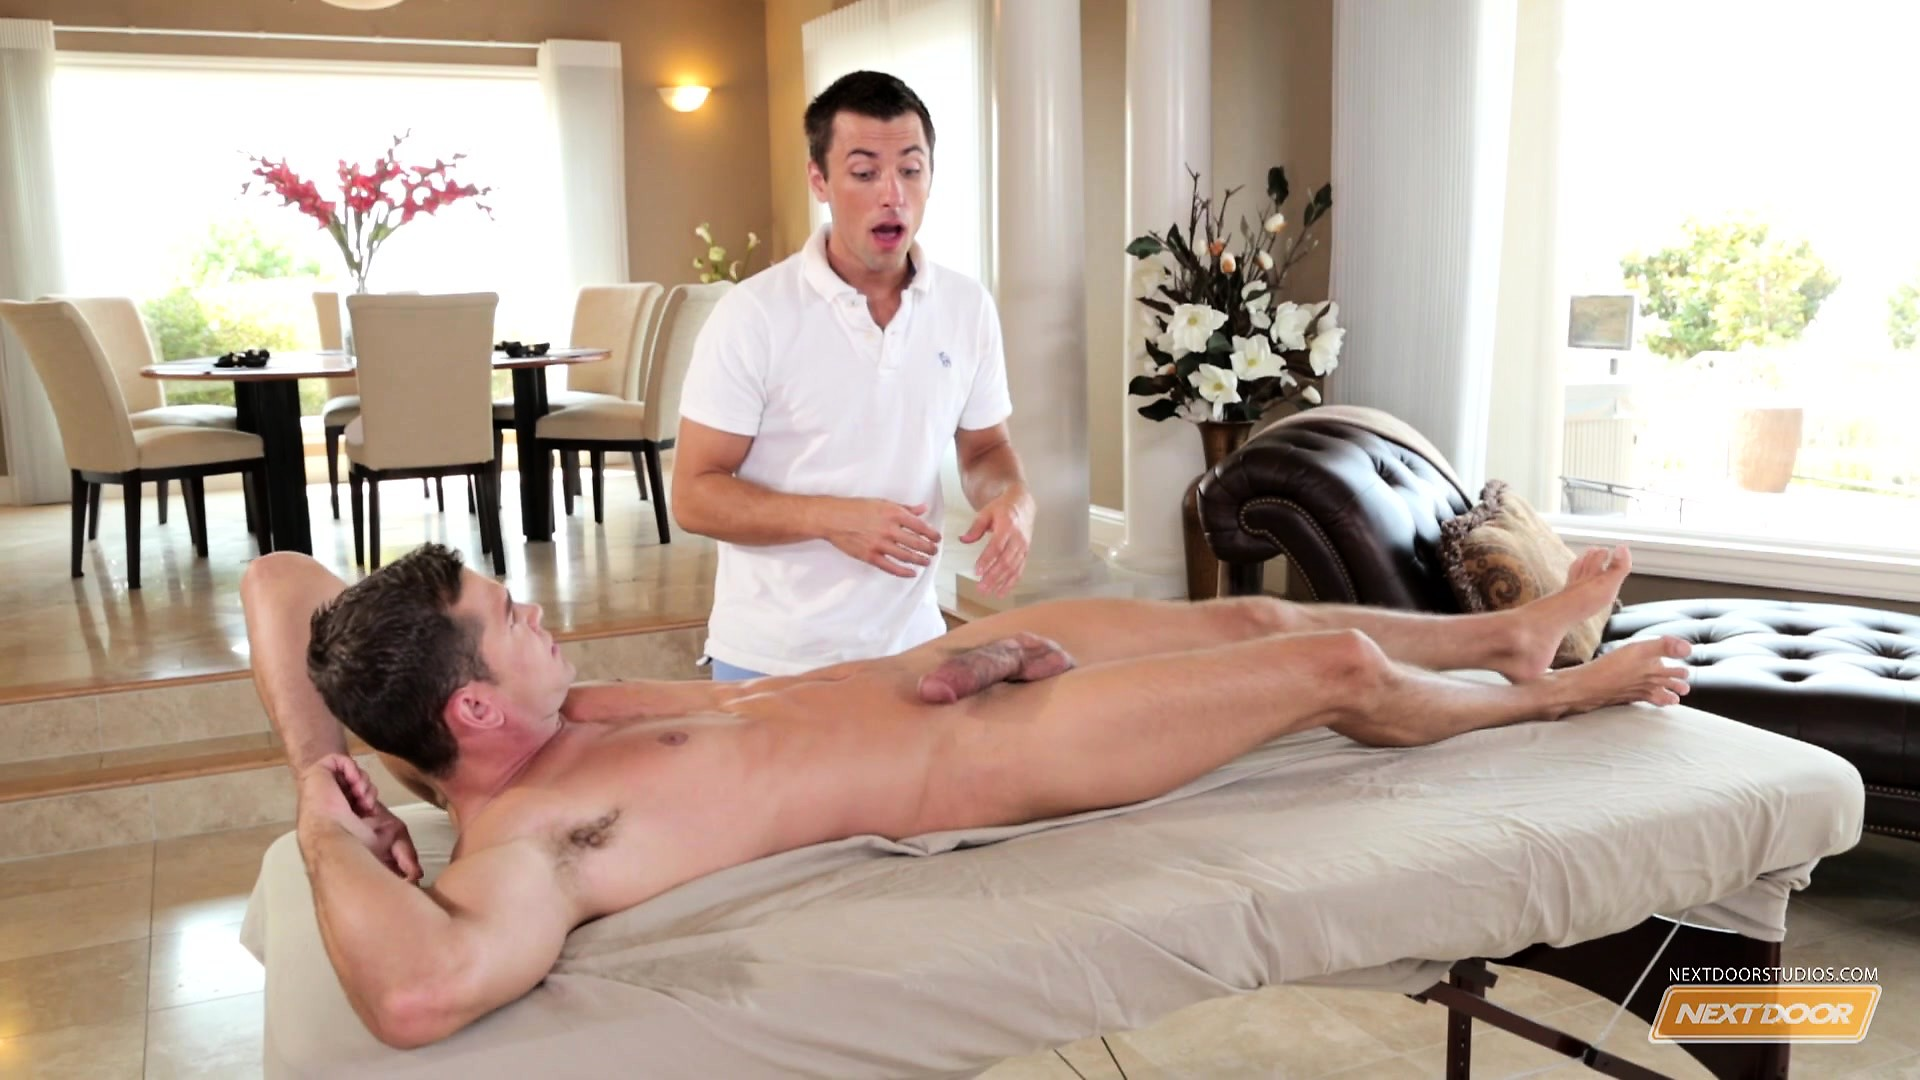 Free home porn massage videos advise